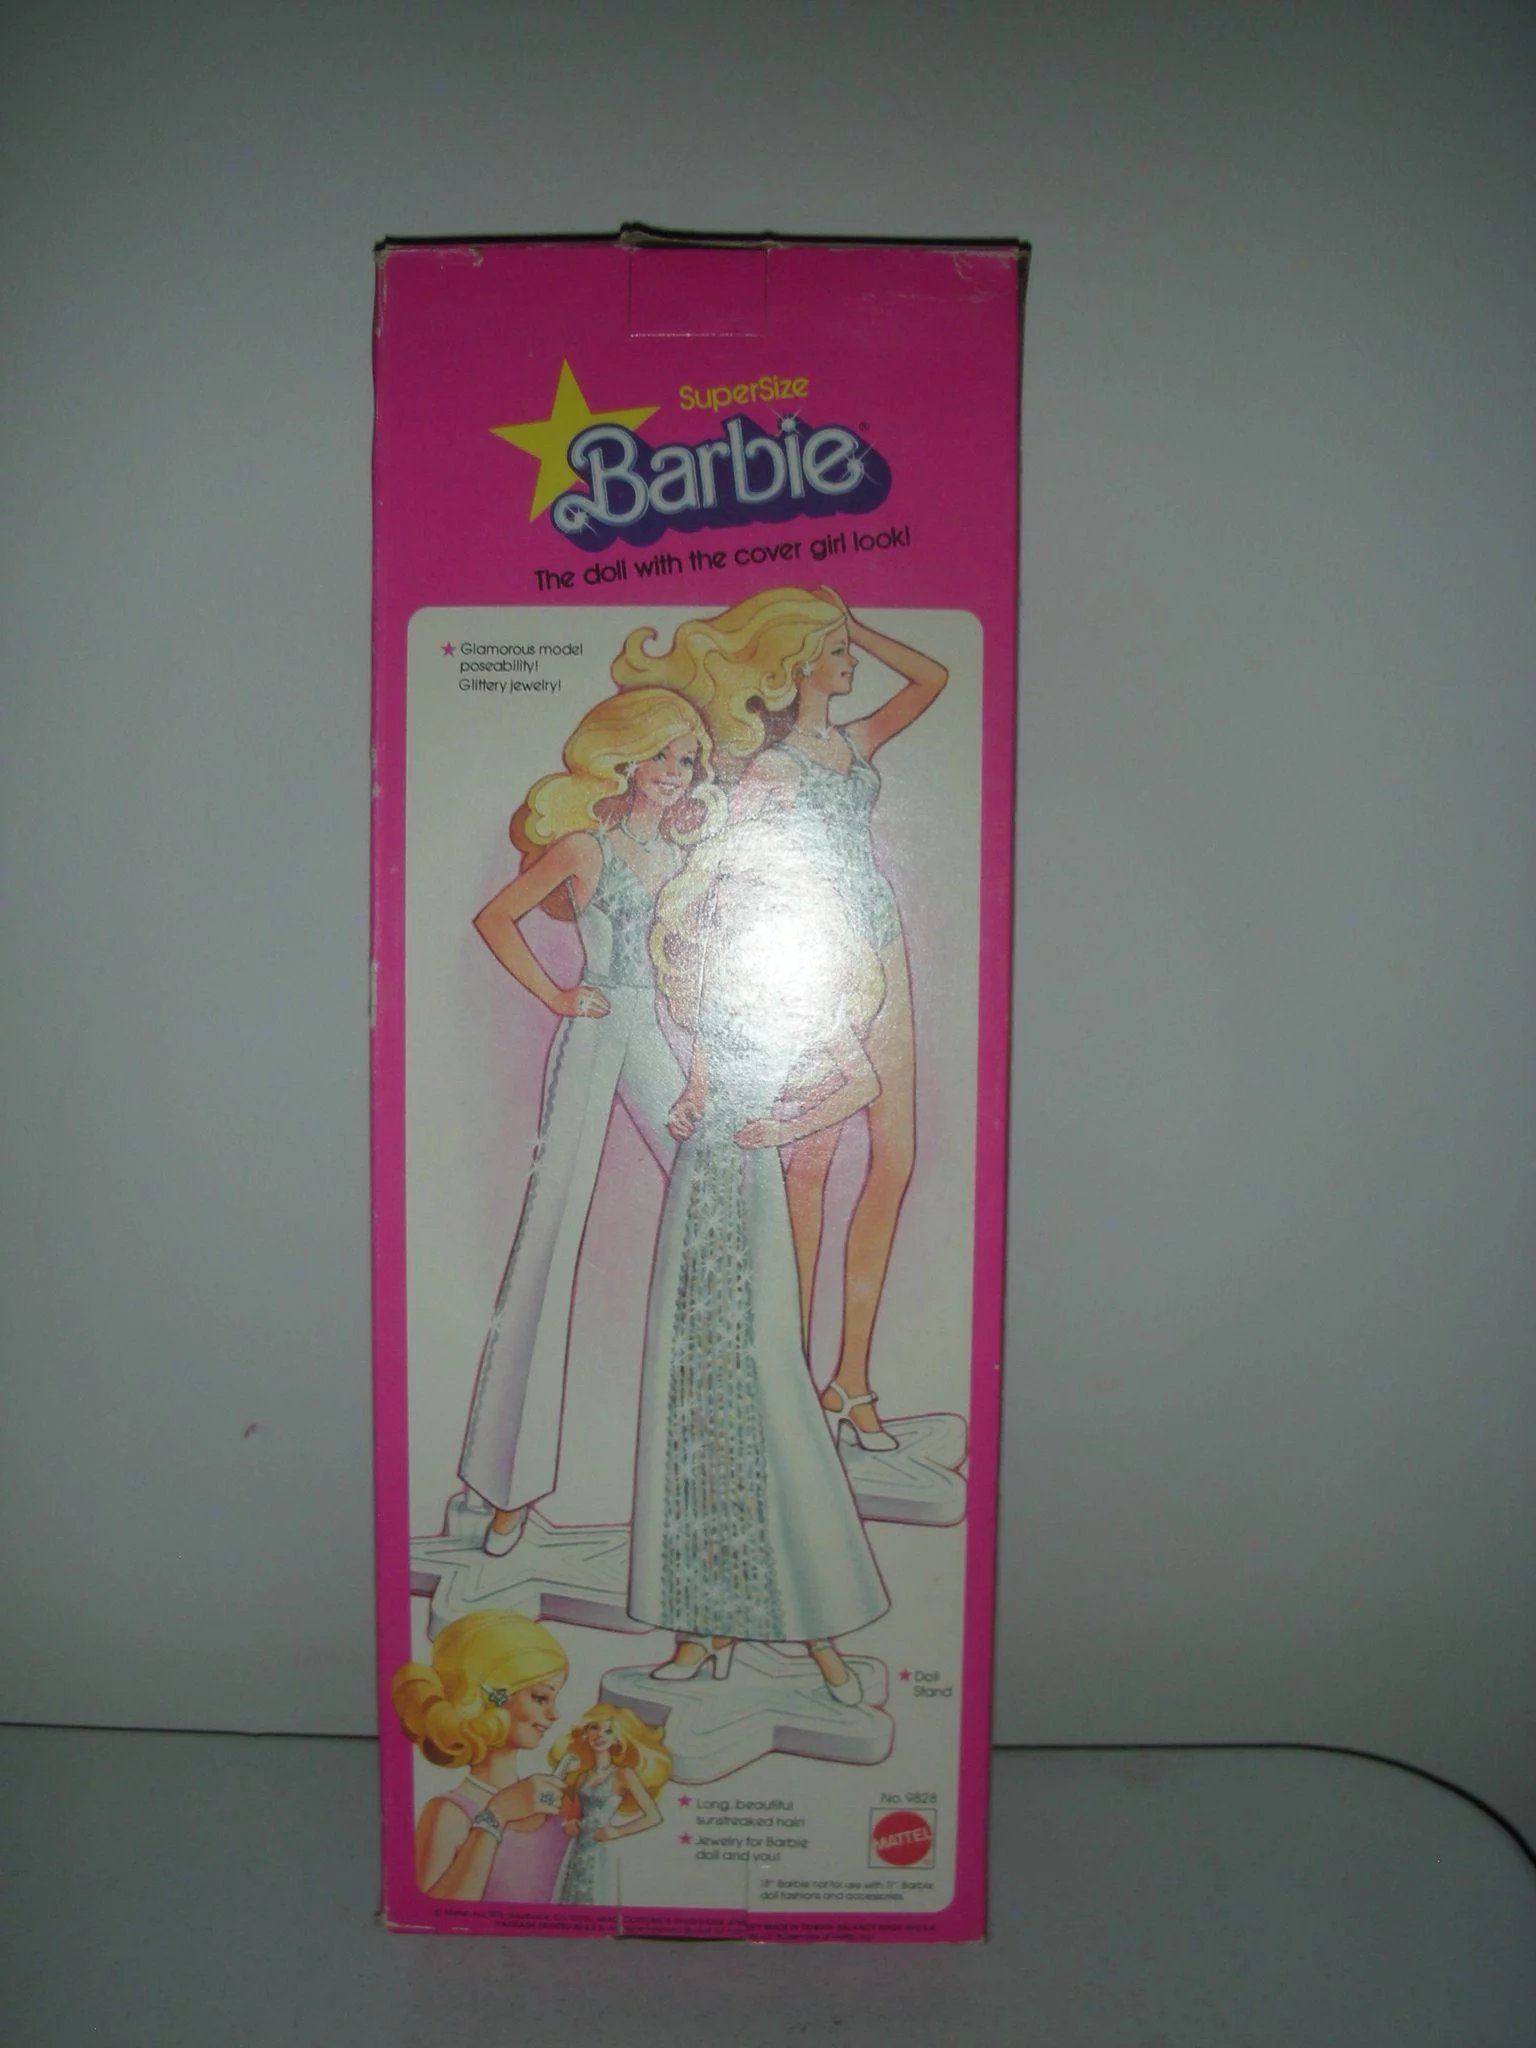 Supersize Superstar Barbie Doll Nrfb 18 Inches Tall Circa